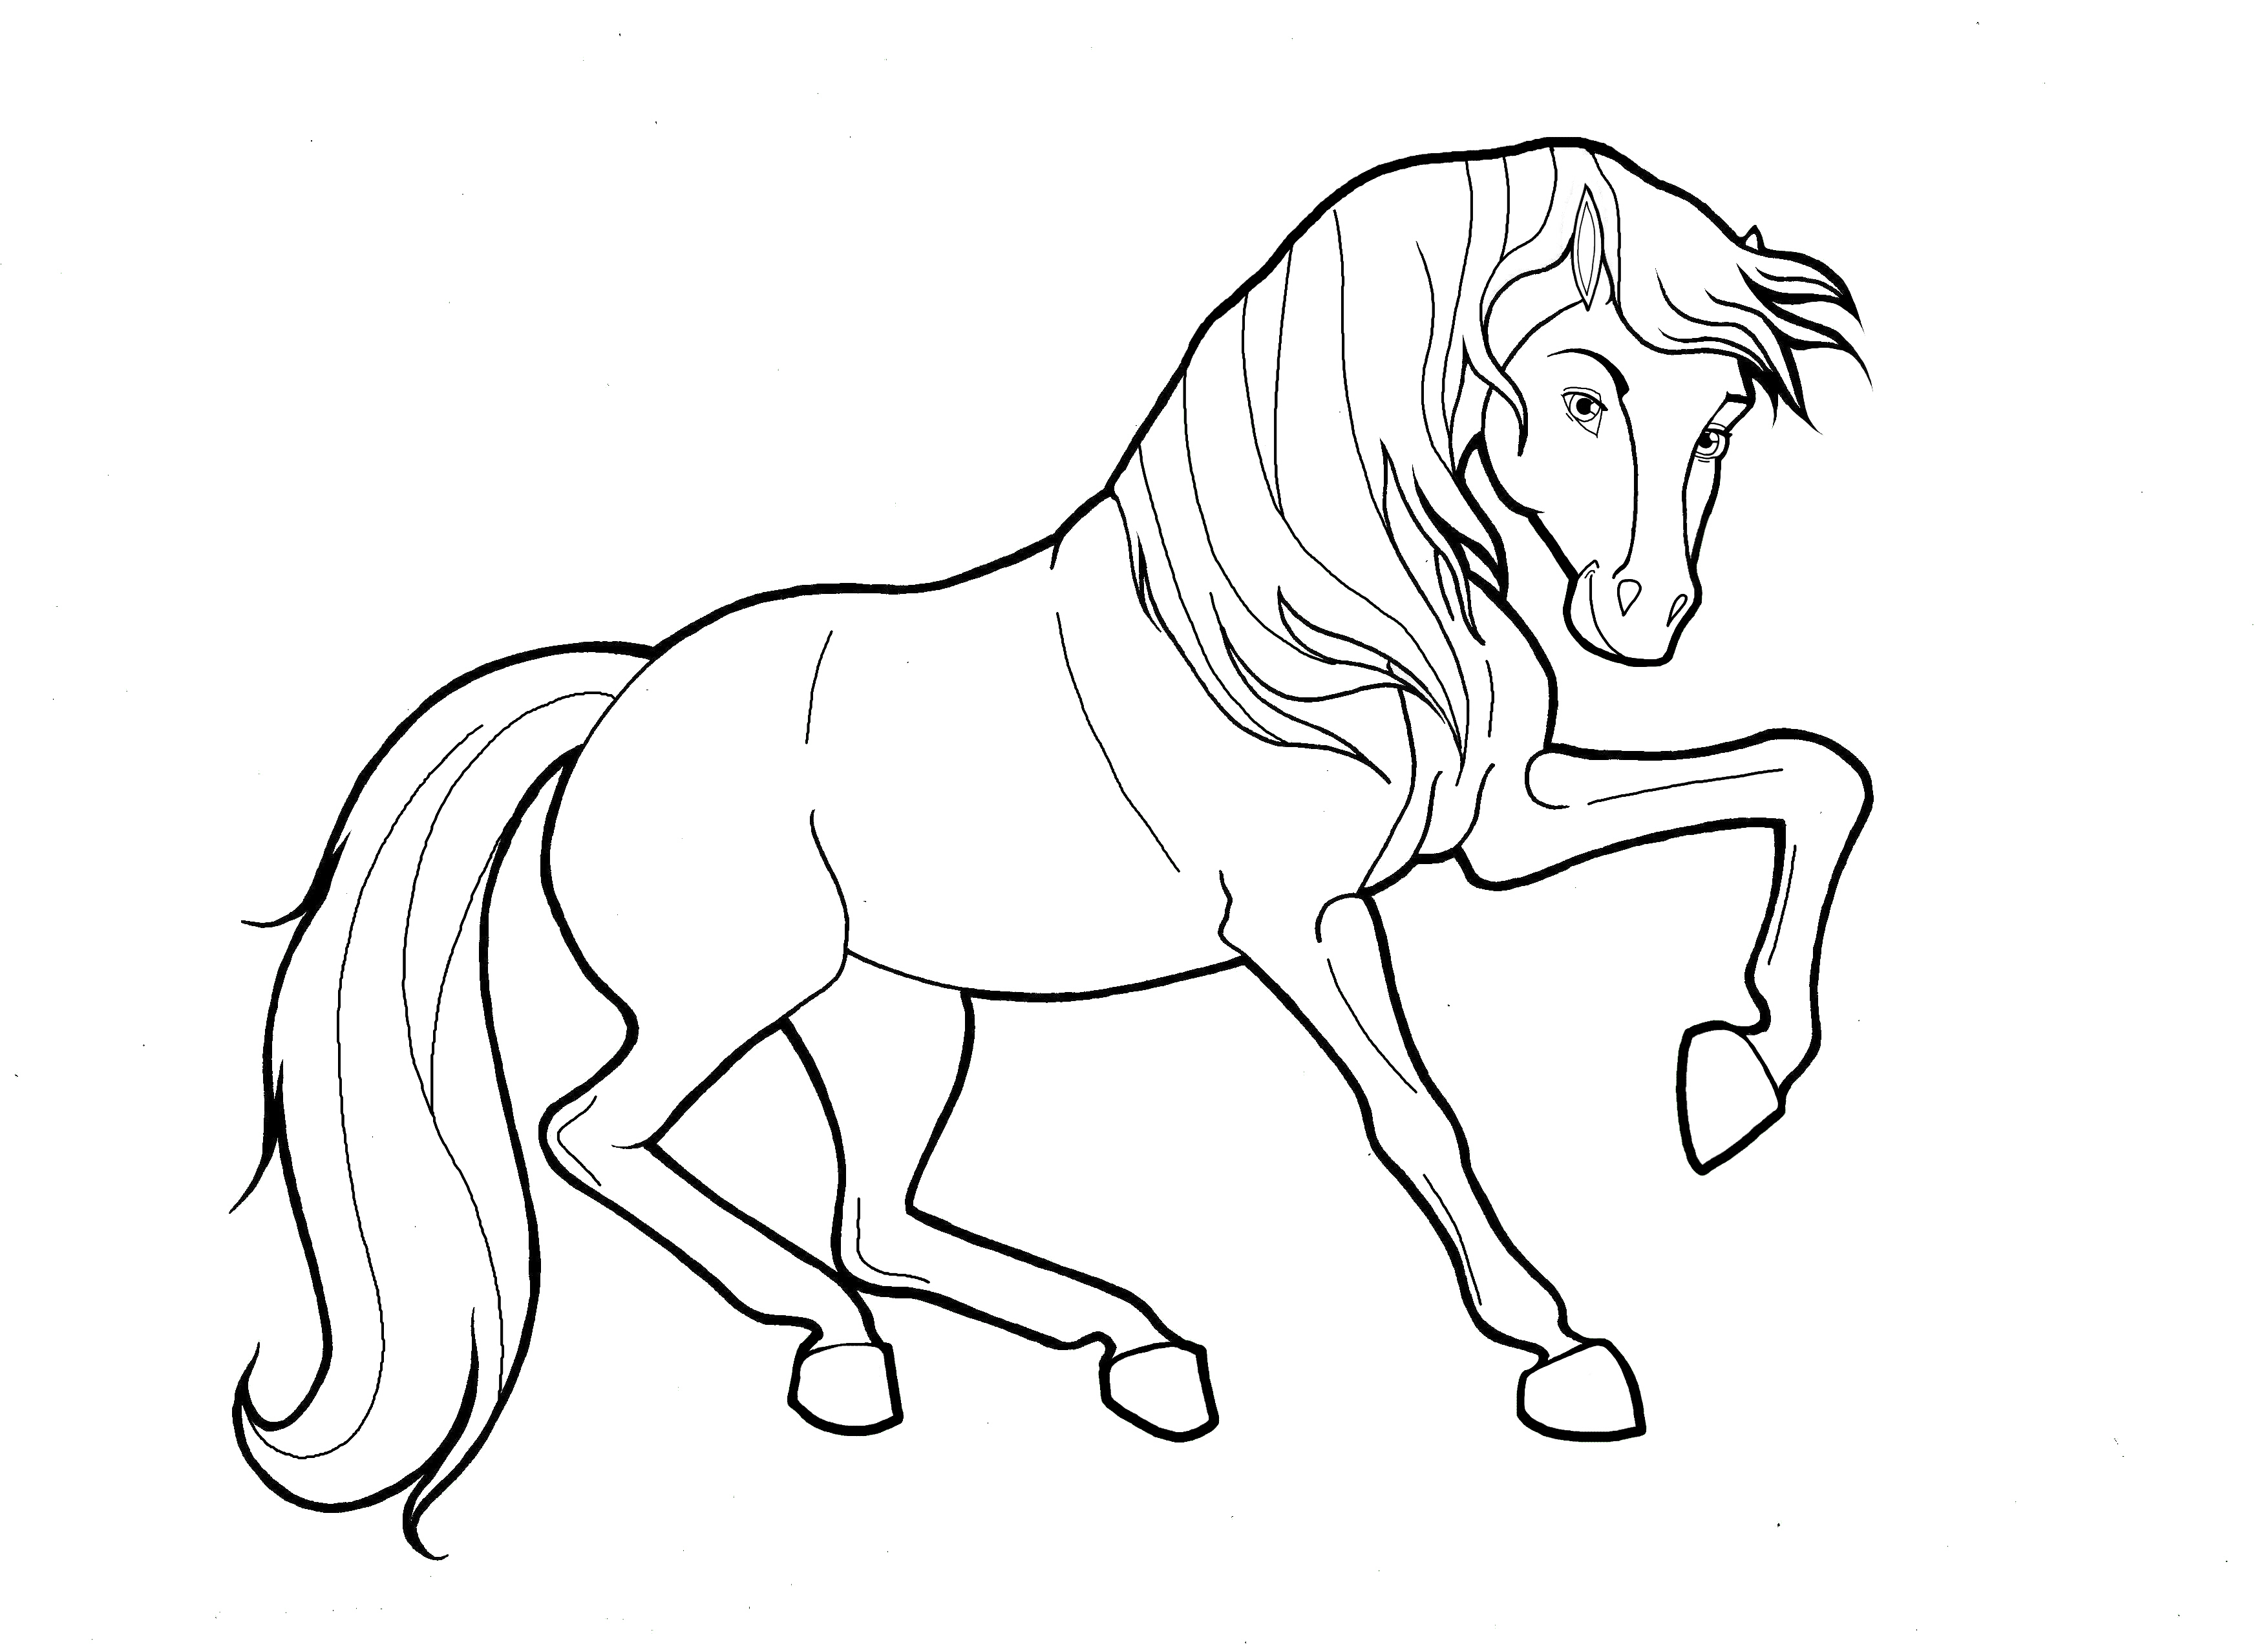 coloring images horse 30 best horse coloring pages ideas weneedfun coloring images horse